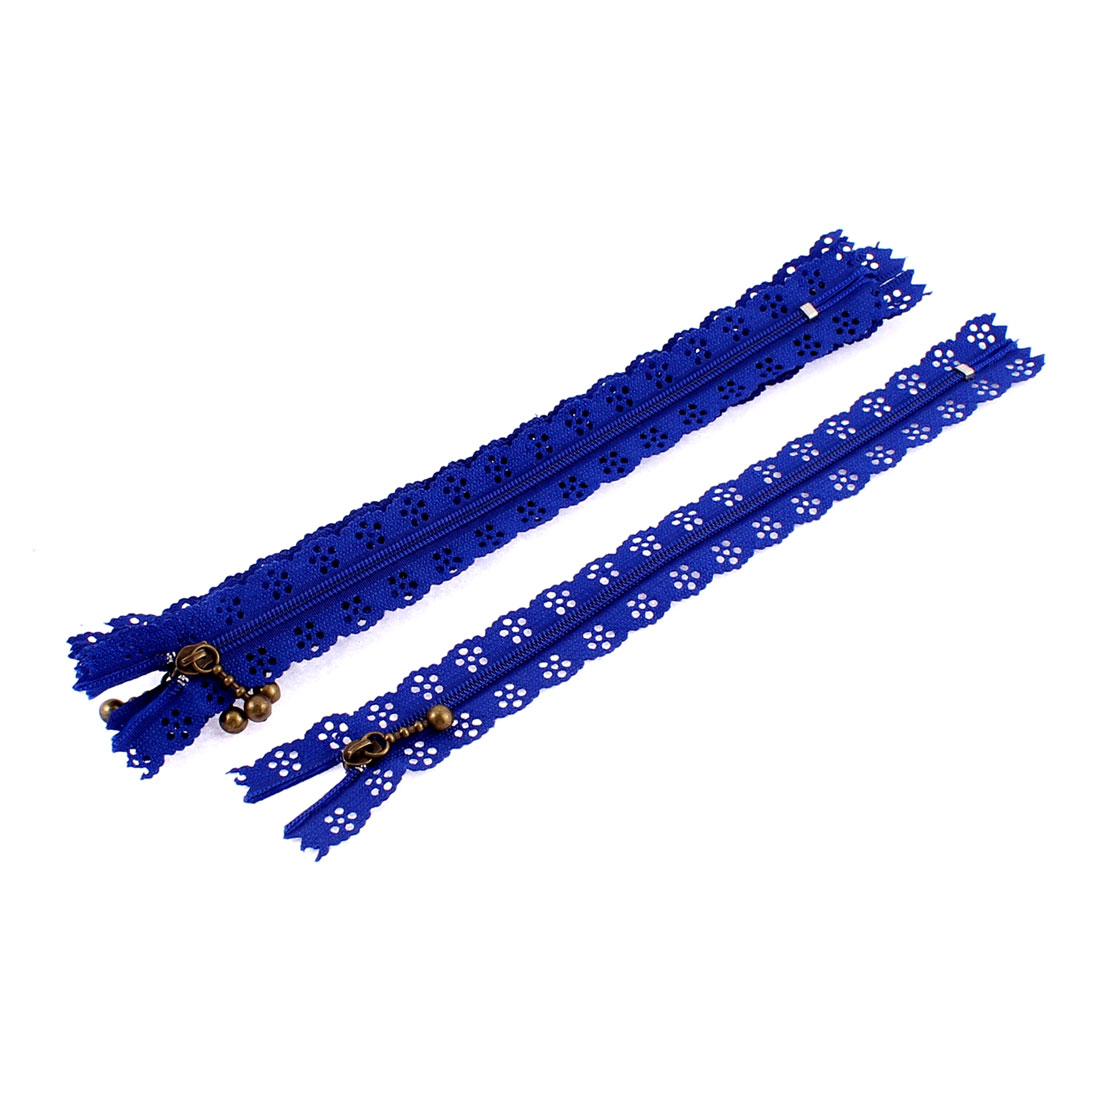 Nylon Coil Zippers Lace Edge Tailor Bag Clothing DIY Craft Dark Blue 20cm 5 Pcs